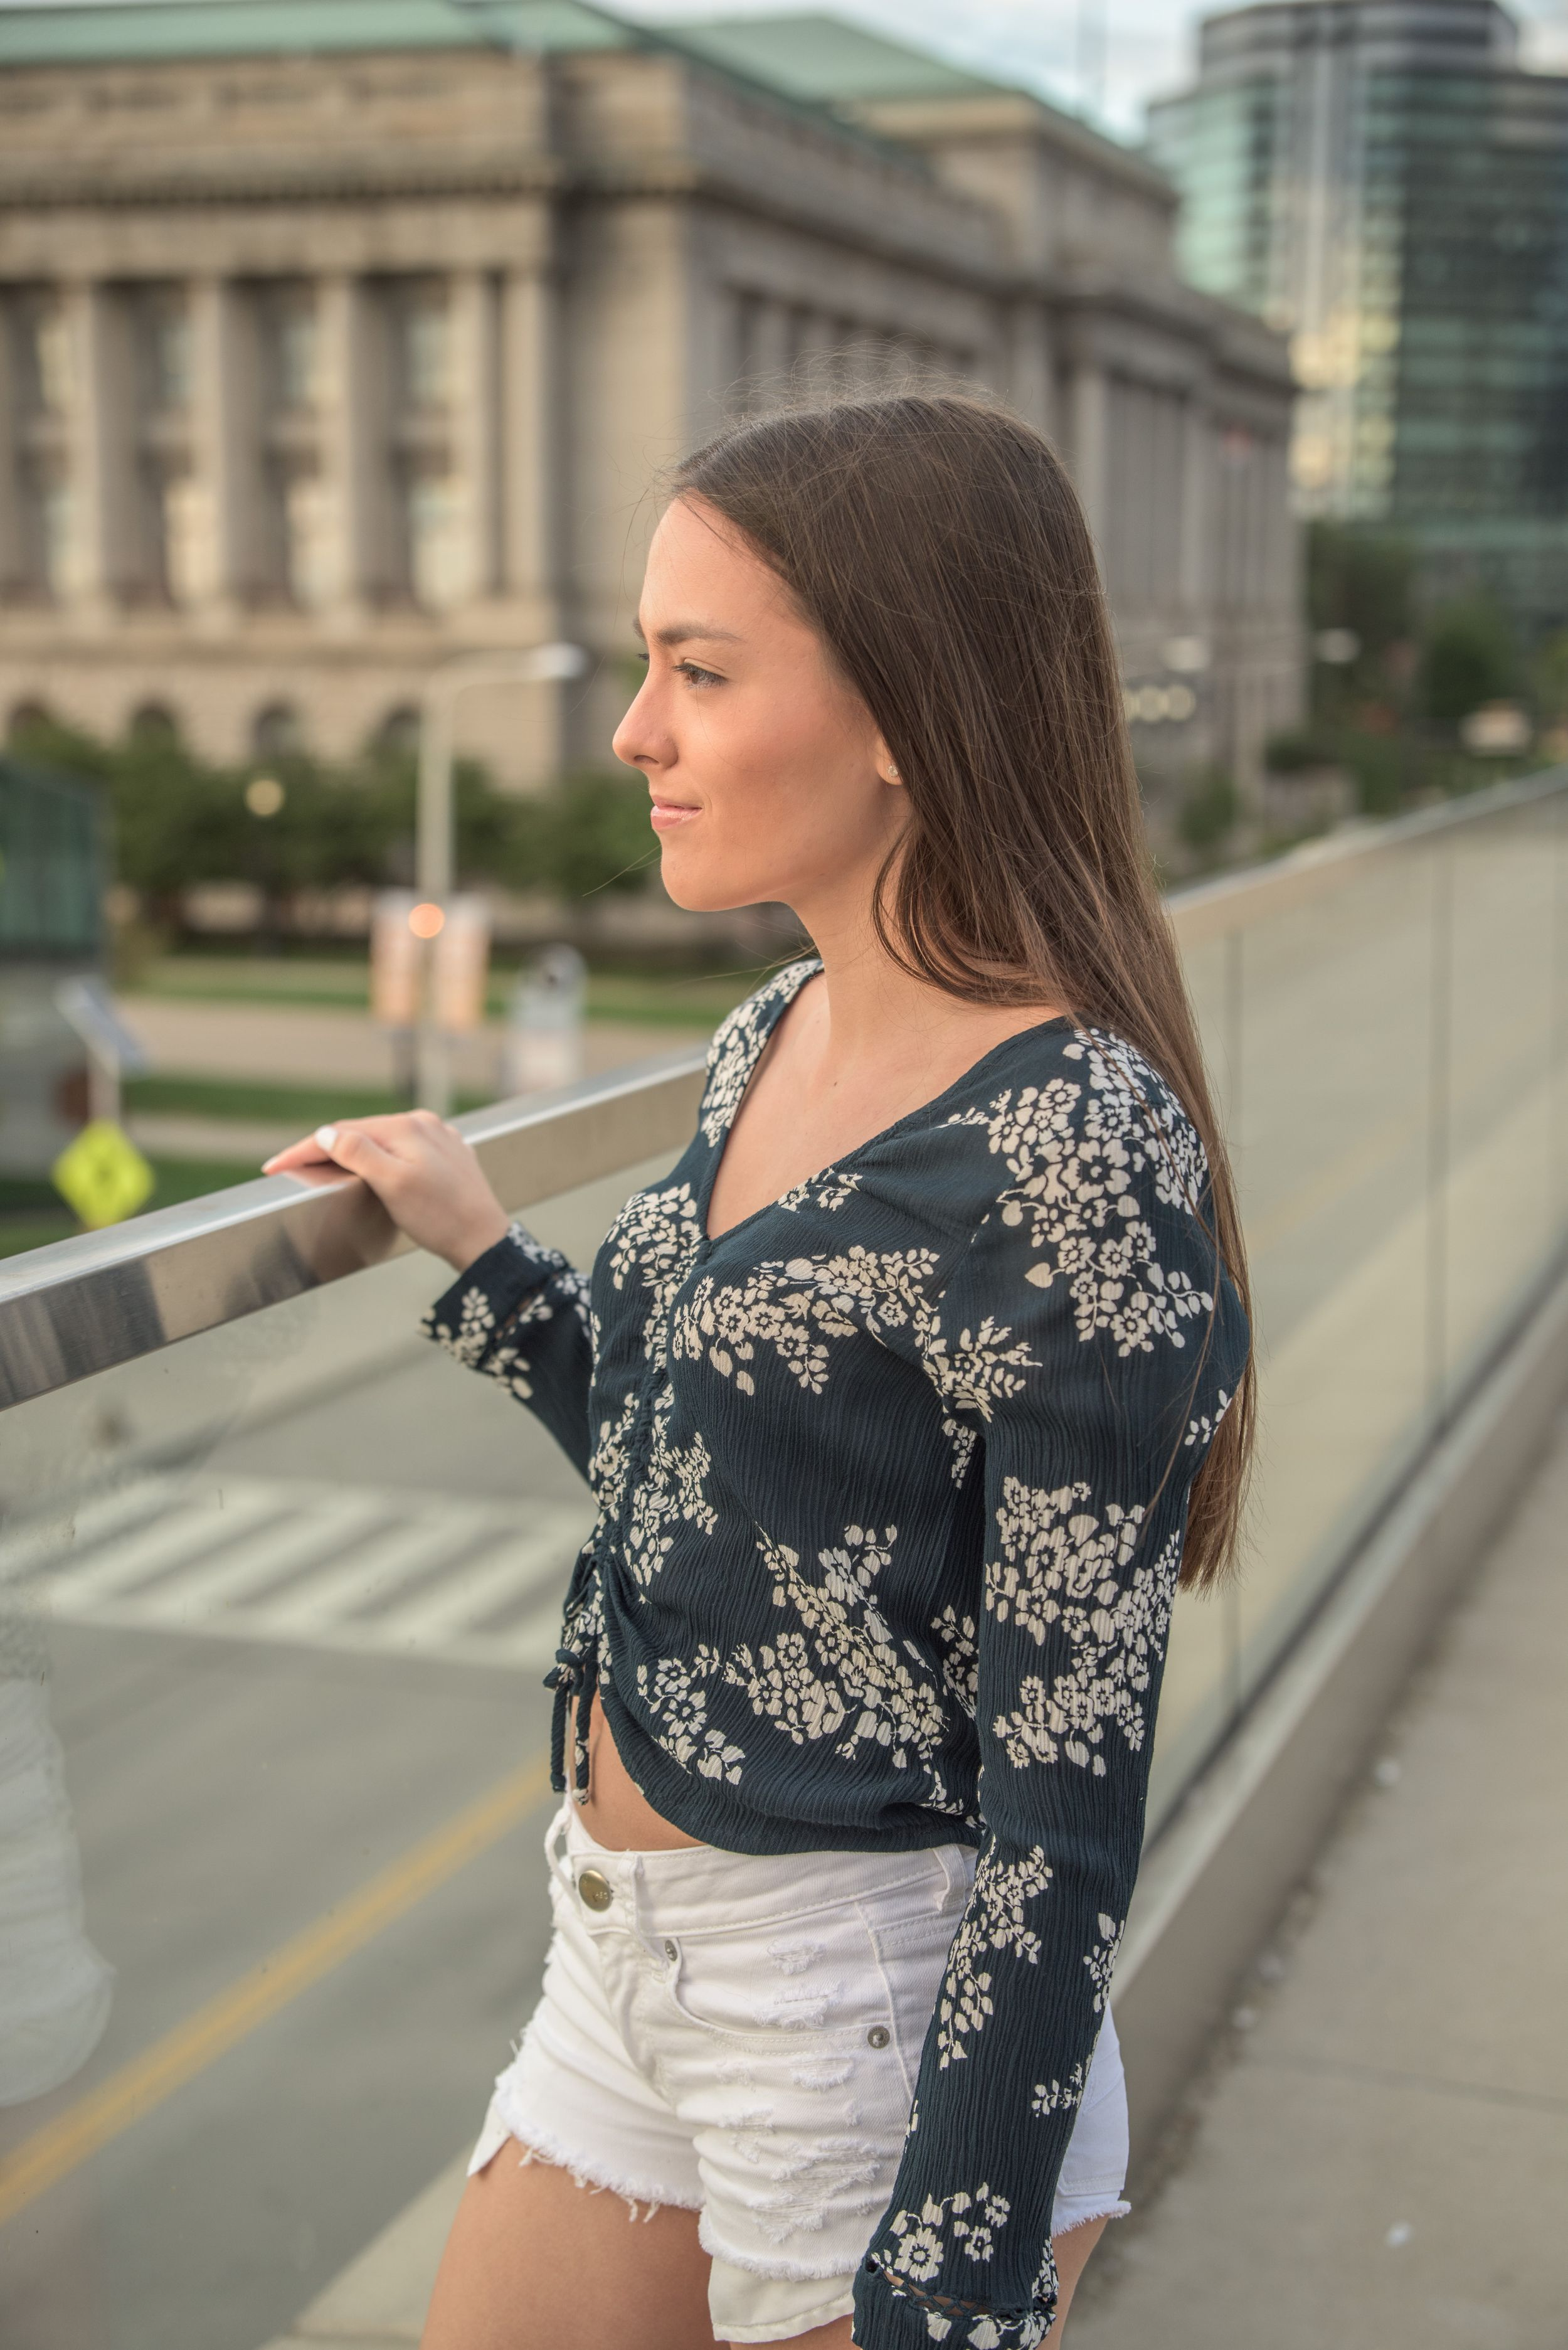 Malina (St Jospeh Academy Class of 2020) by City Hall, Cleveland, Ohio